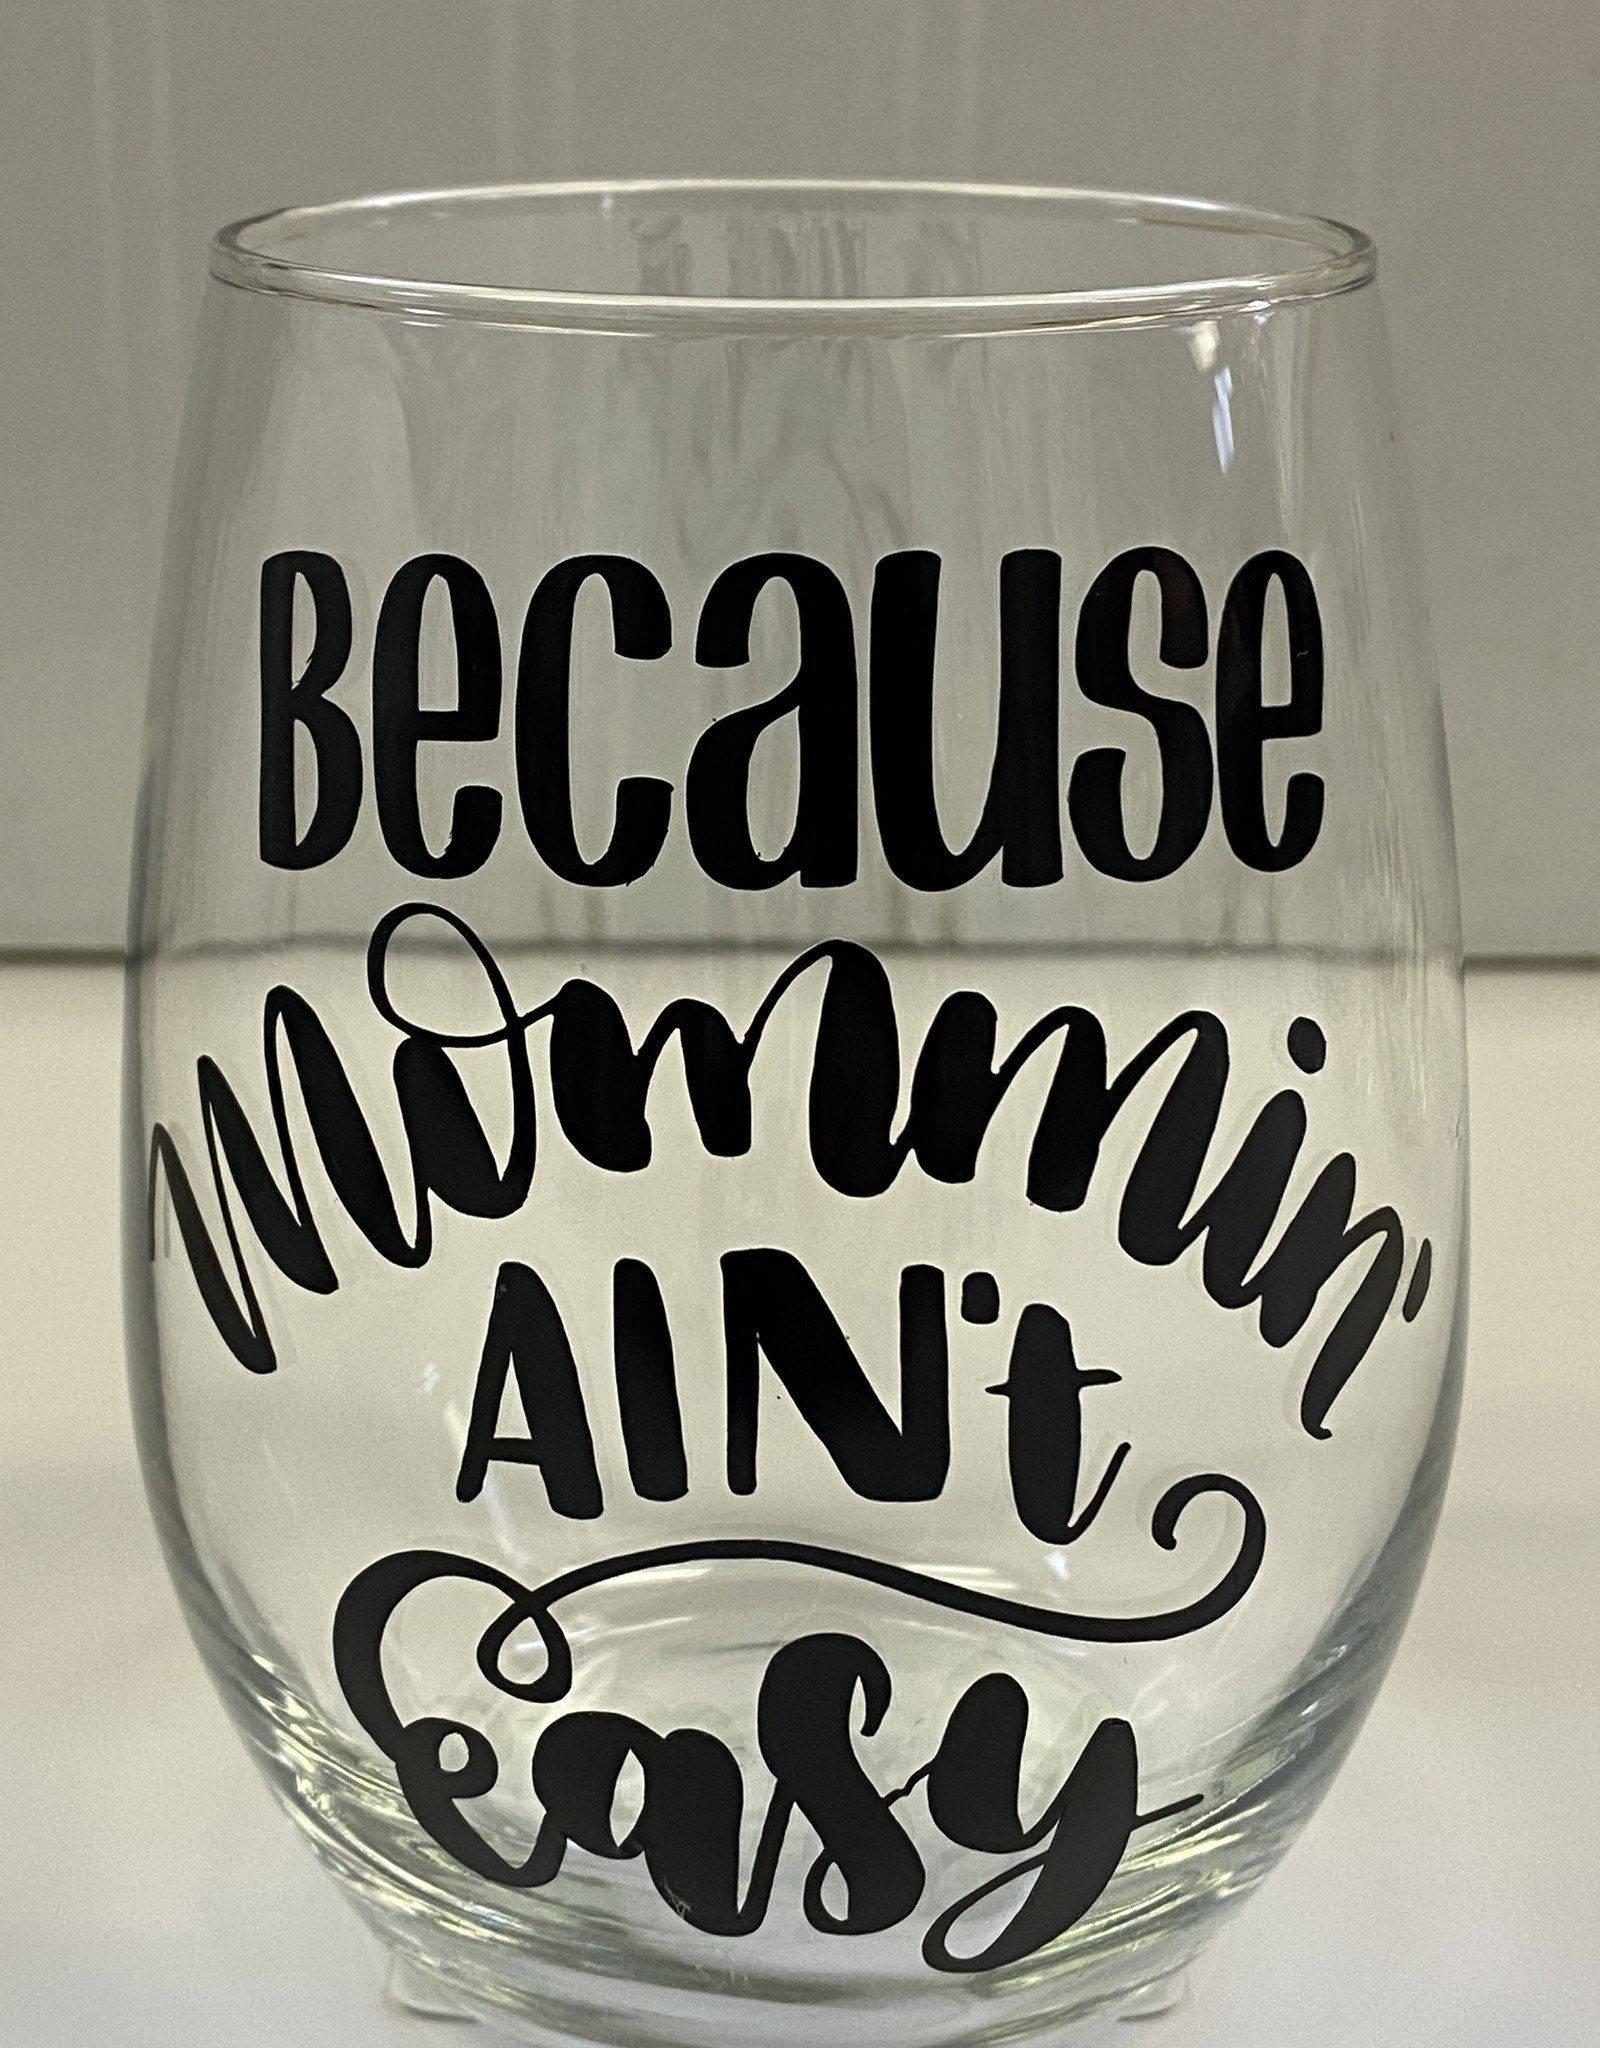 Cheers My Dears Because Mommin' Stemless Wine Glass